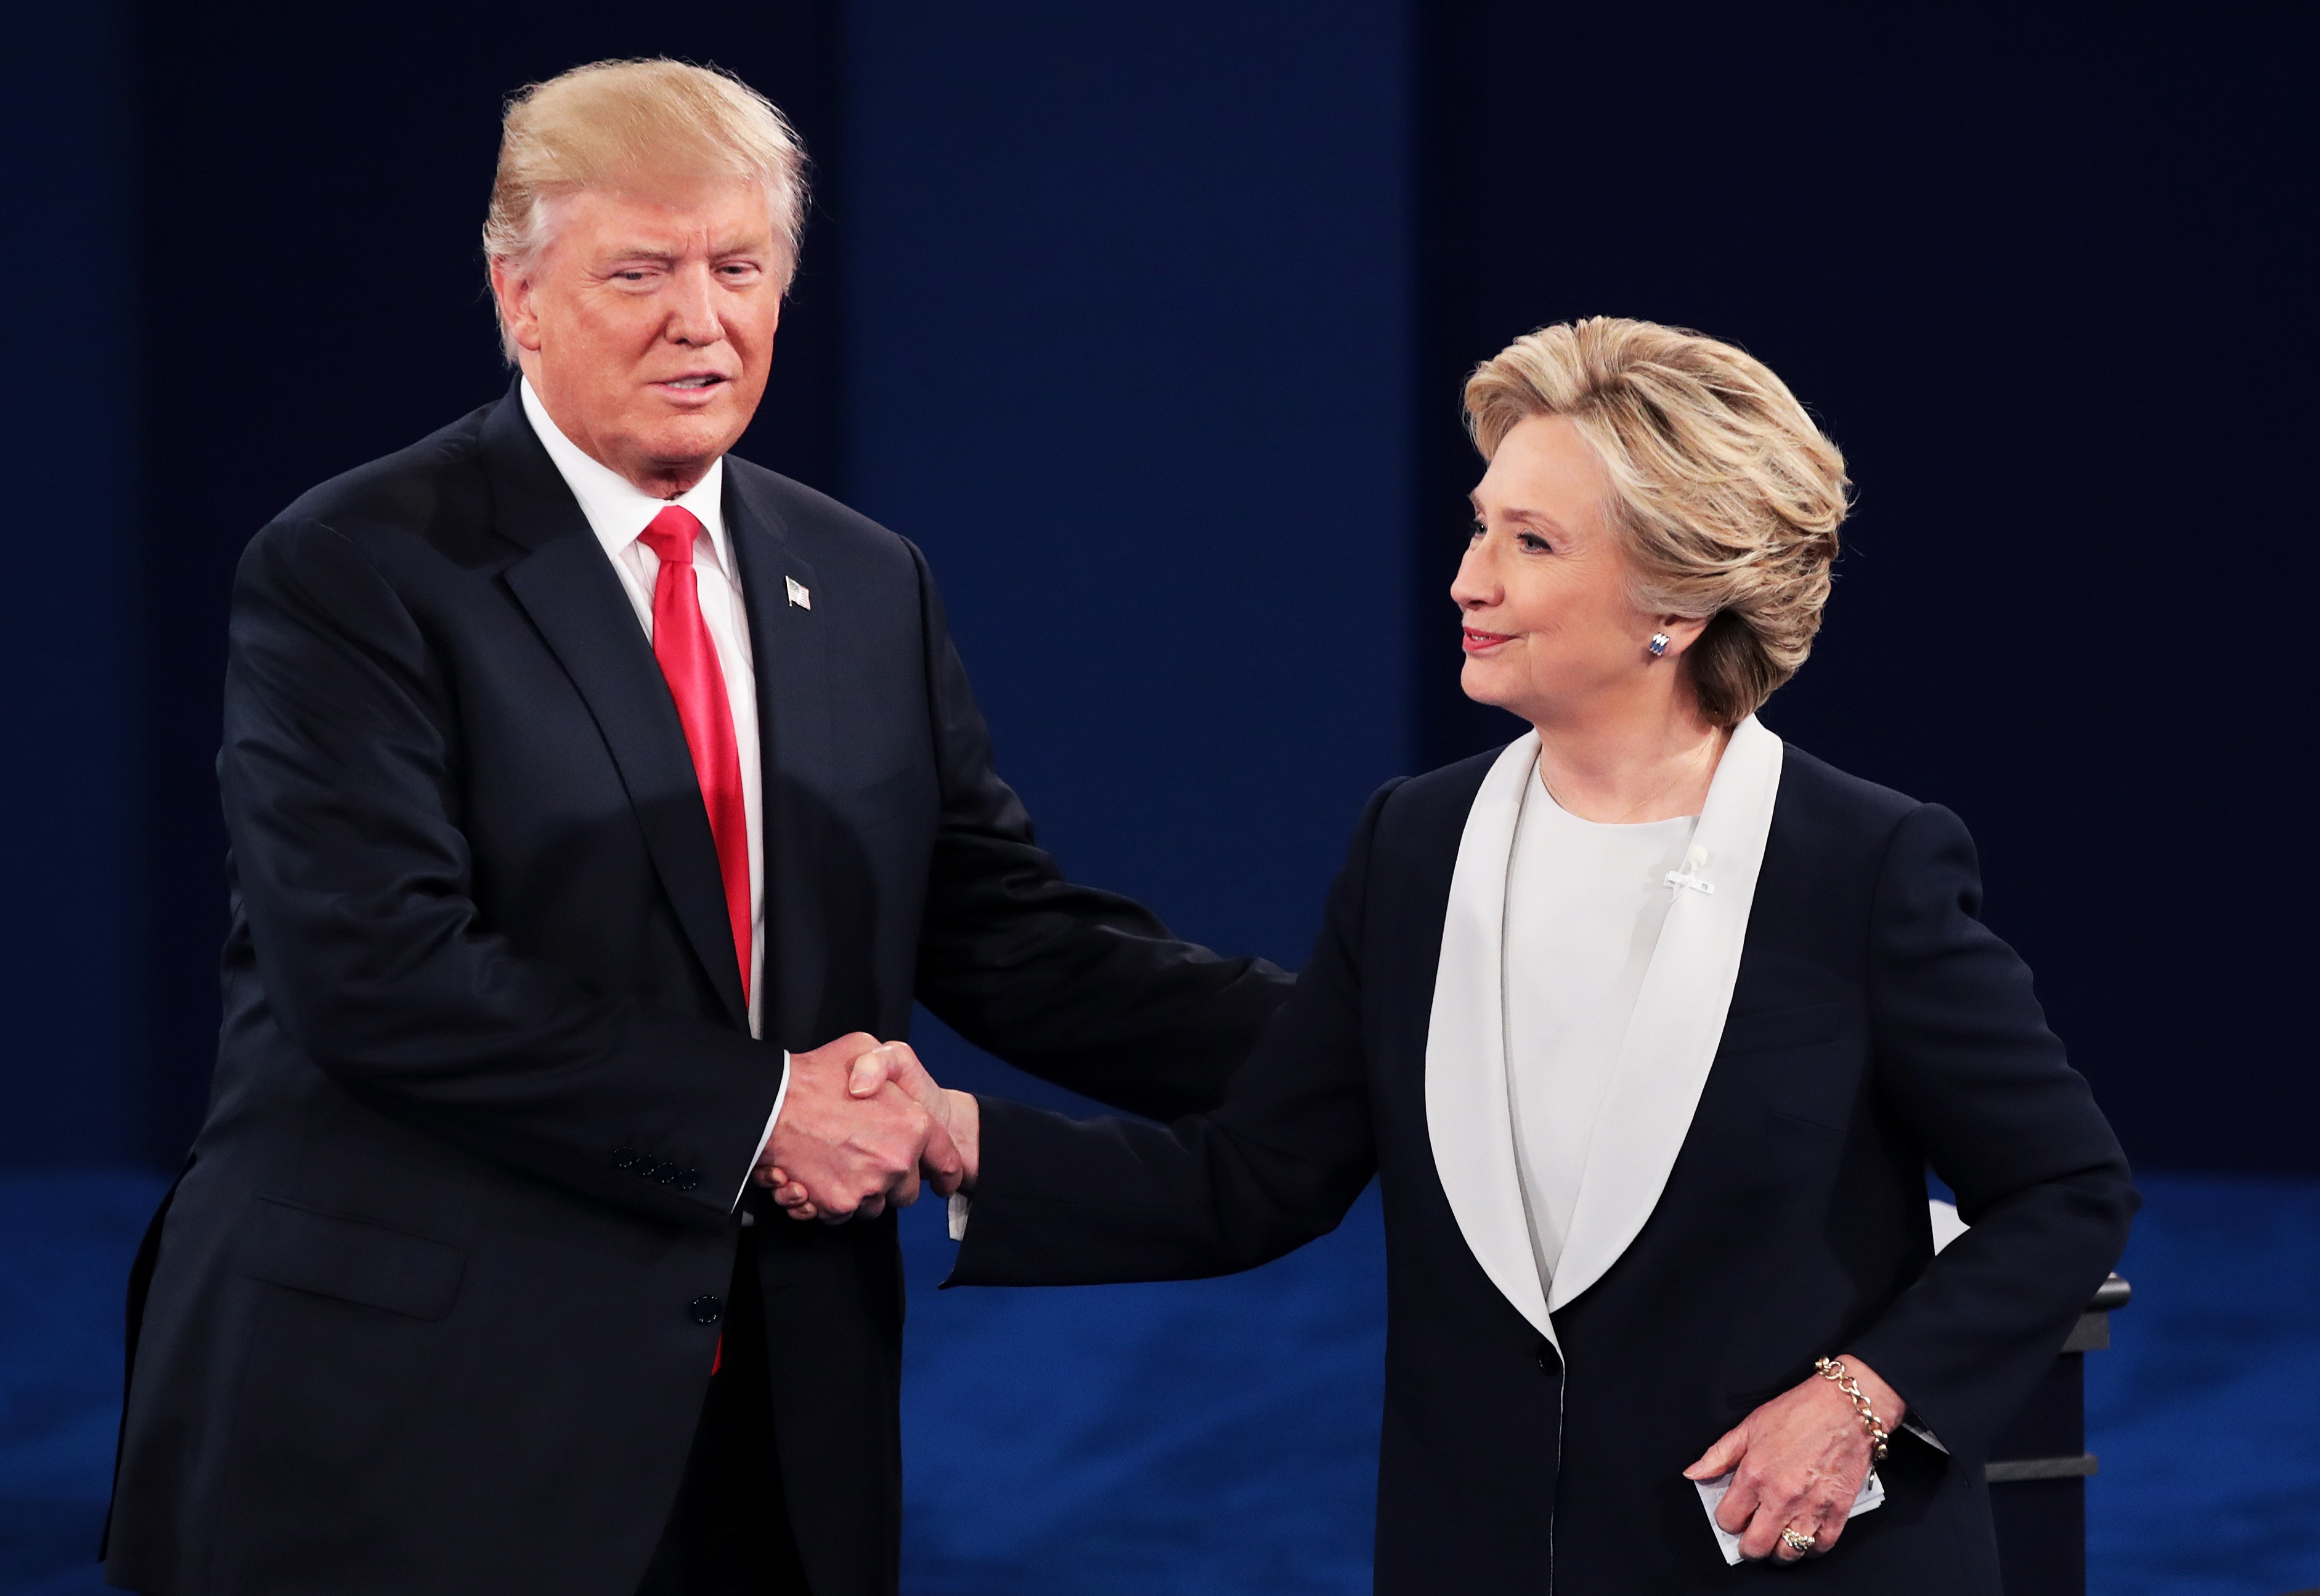 Republican presidential nominee Donald Trump (L) shakes hands with Democratic presidential nominee former Secretary of State Hillary Clinton during the town hall debate at Washington University on October 9, 2016 in St Louis, Missouri. This is the second of three presidential debates scheduled prior to the November 8th election.